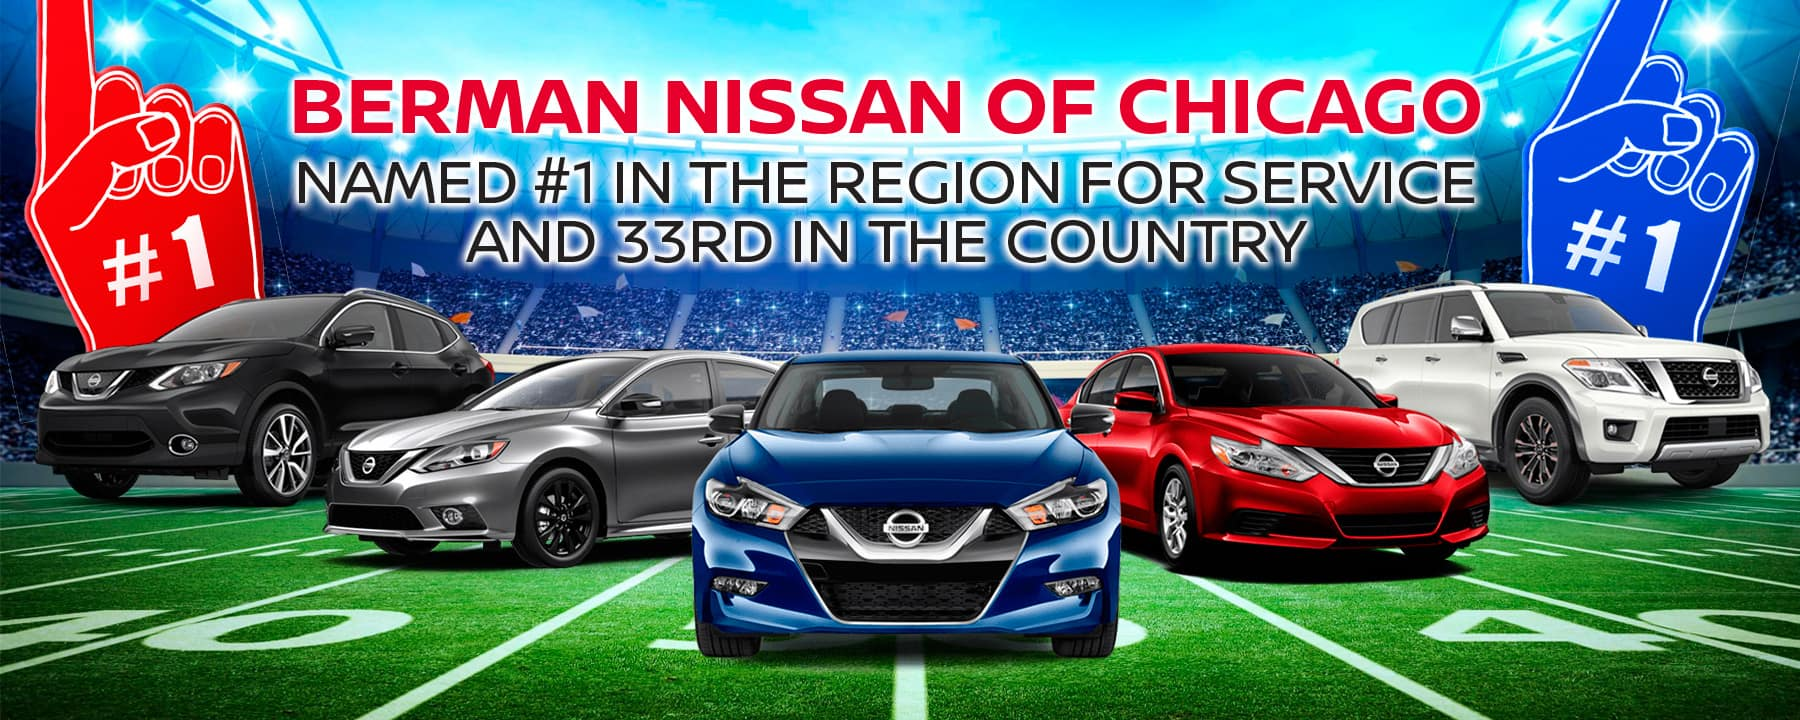 Berman Nissan of Chicago Service Center Named #1 in the Region for Service!